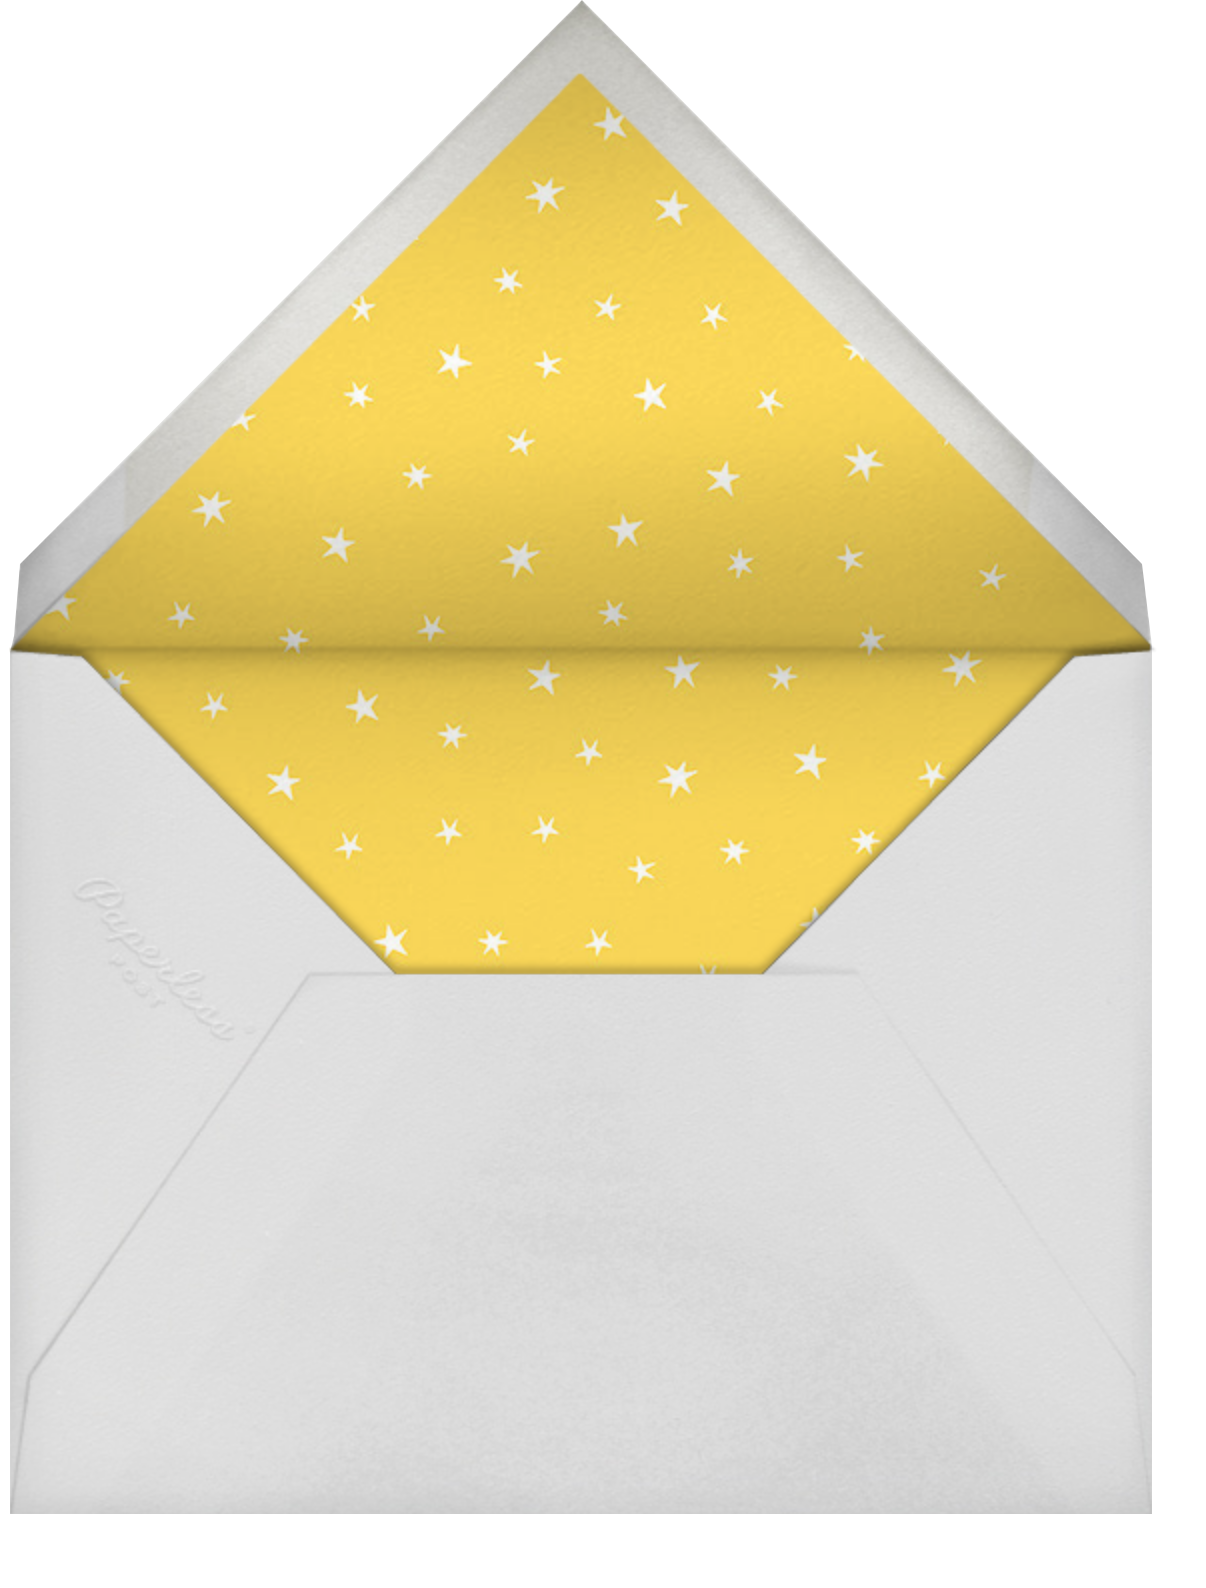 Baby Things (Stationery) - Blue - Hello!Lucky - Kids' stationery - envelope back